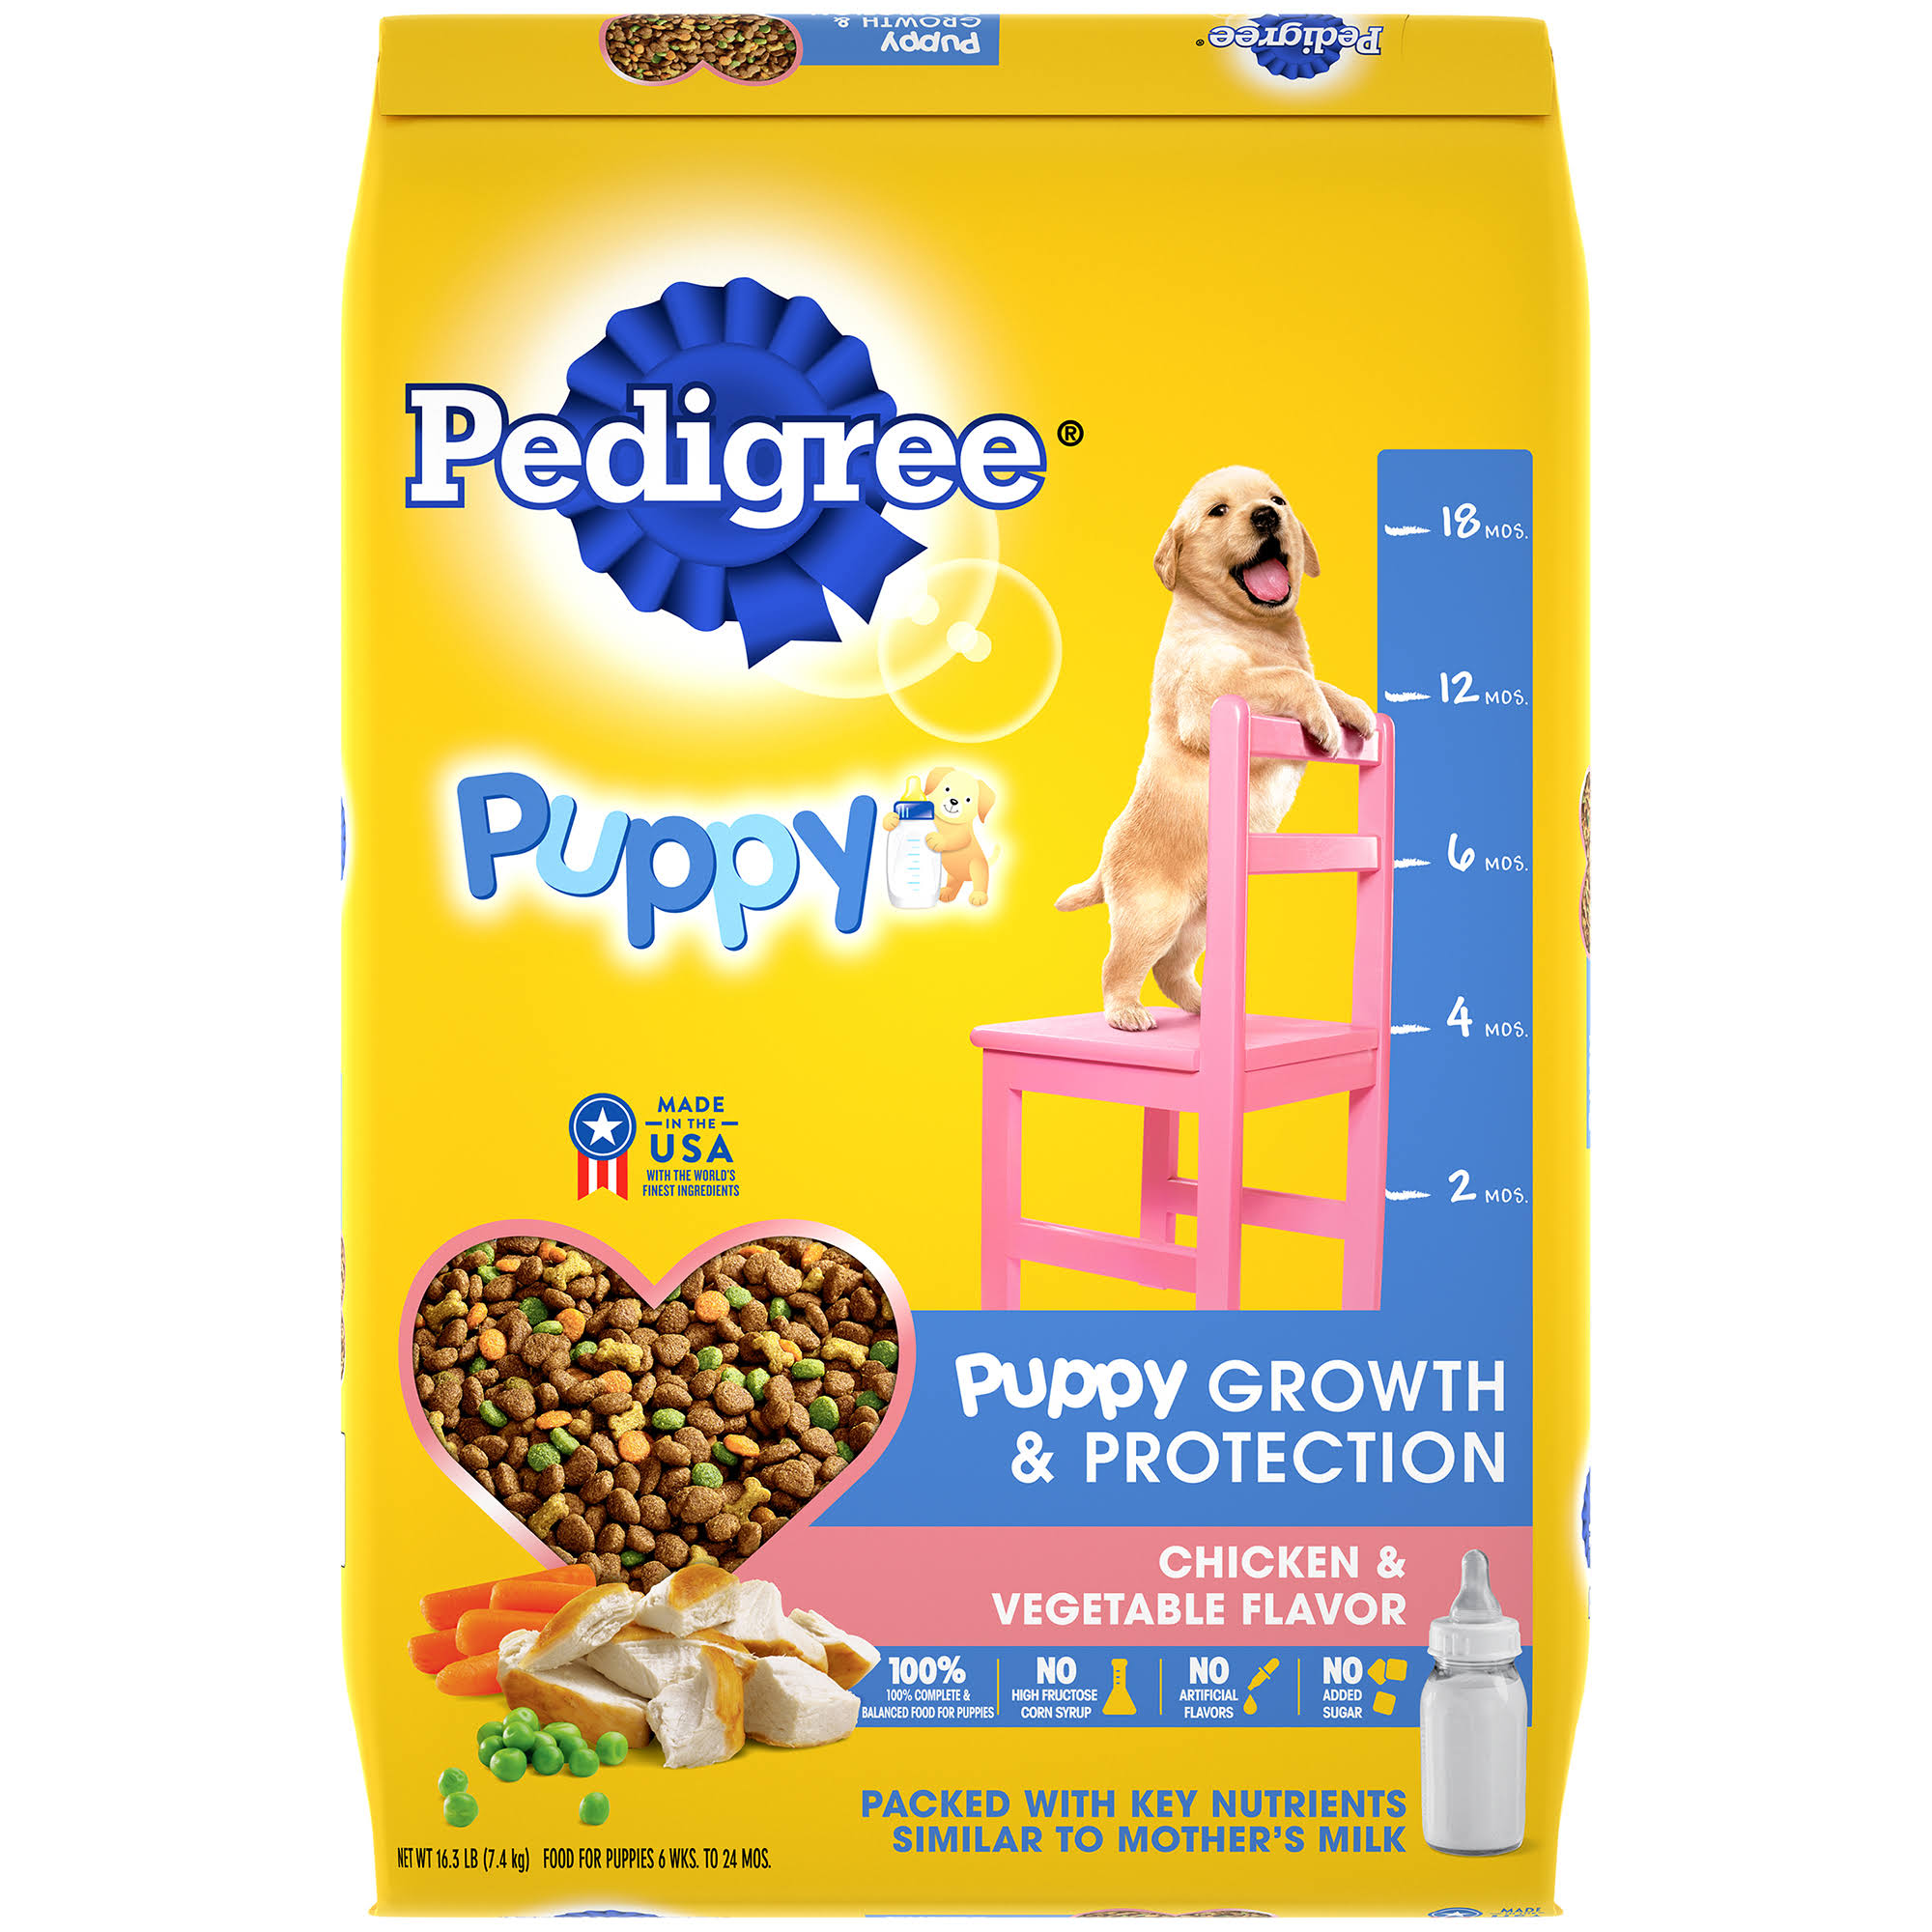 Pedigree Puppy Growth and Protection Chicken and Vegetable Flavor Dry Dog Food - 16.3lbs